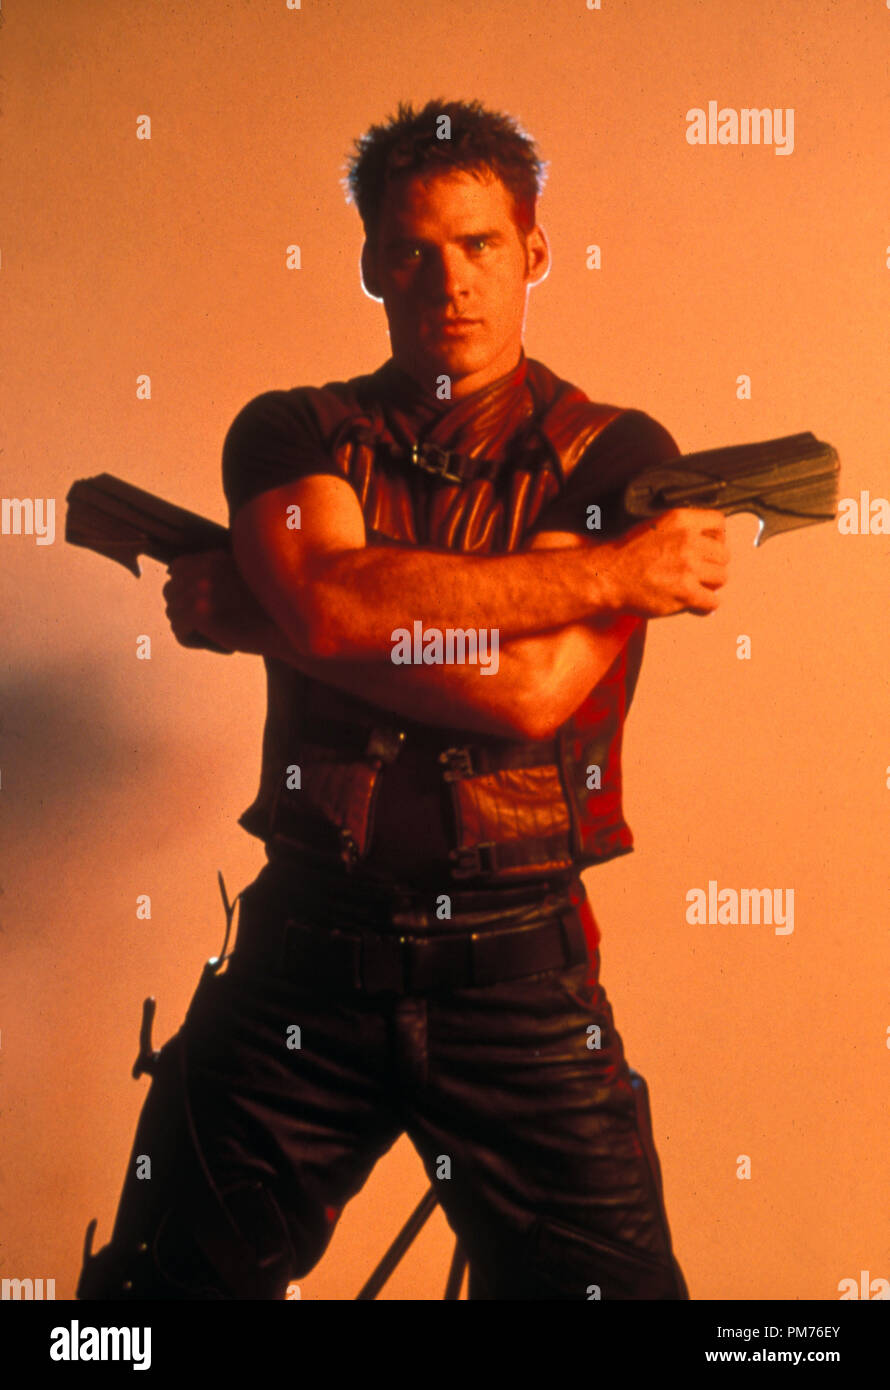 Film Still / Publicity Still from 'Farscape' Ben Browder © 1999 Sci-Fi Channel   File Reference # 30973310THA  For Editorial Use Only -  All Rights Reserved - Stock Image